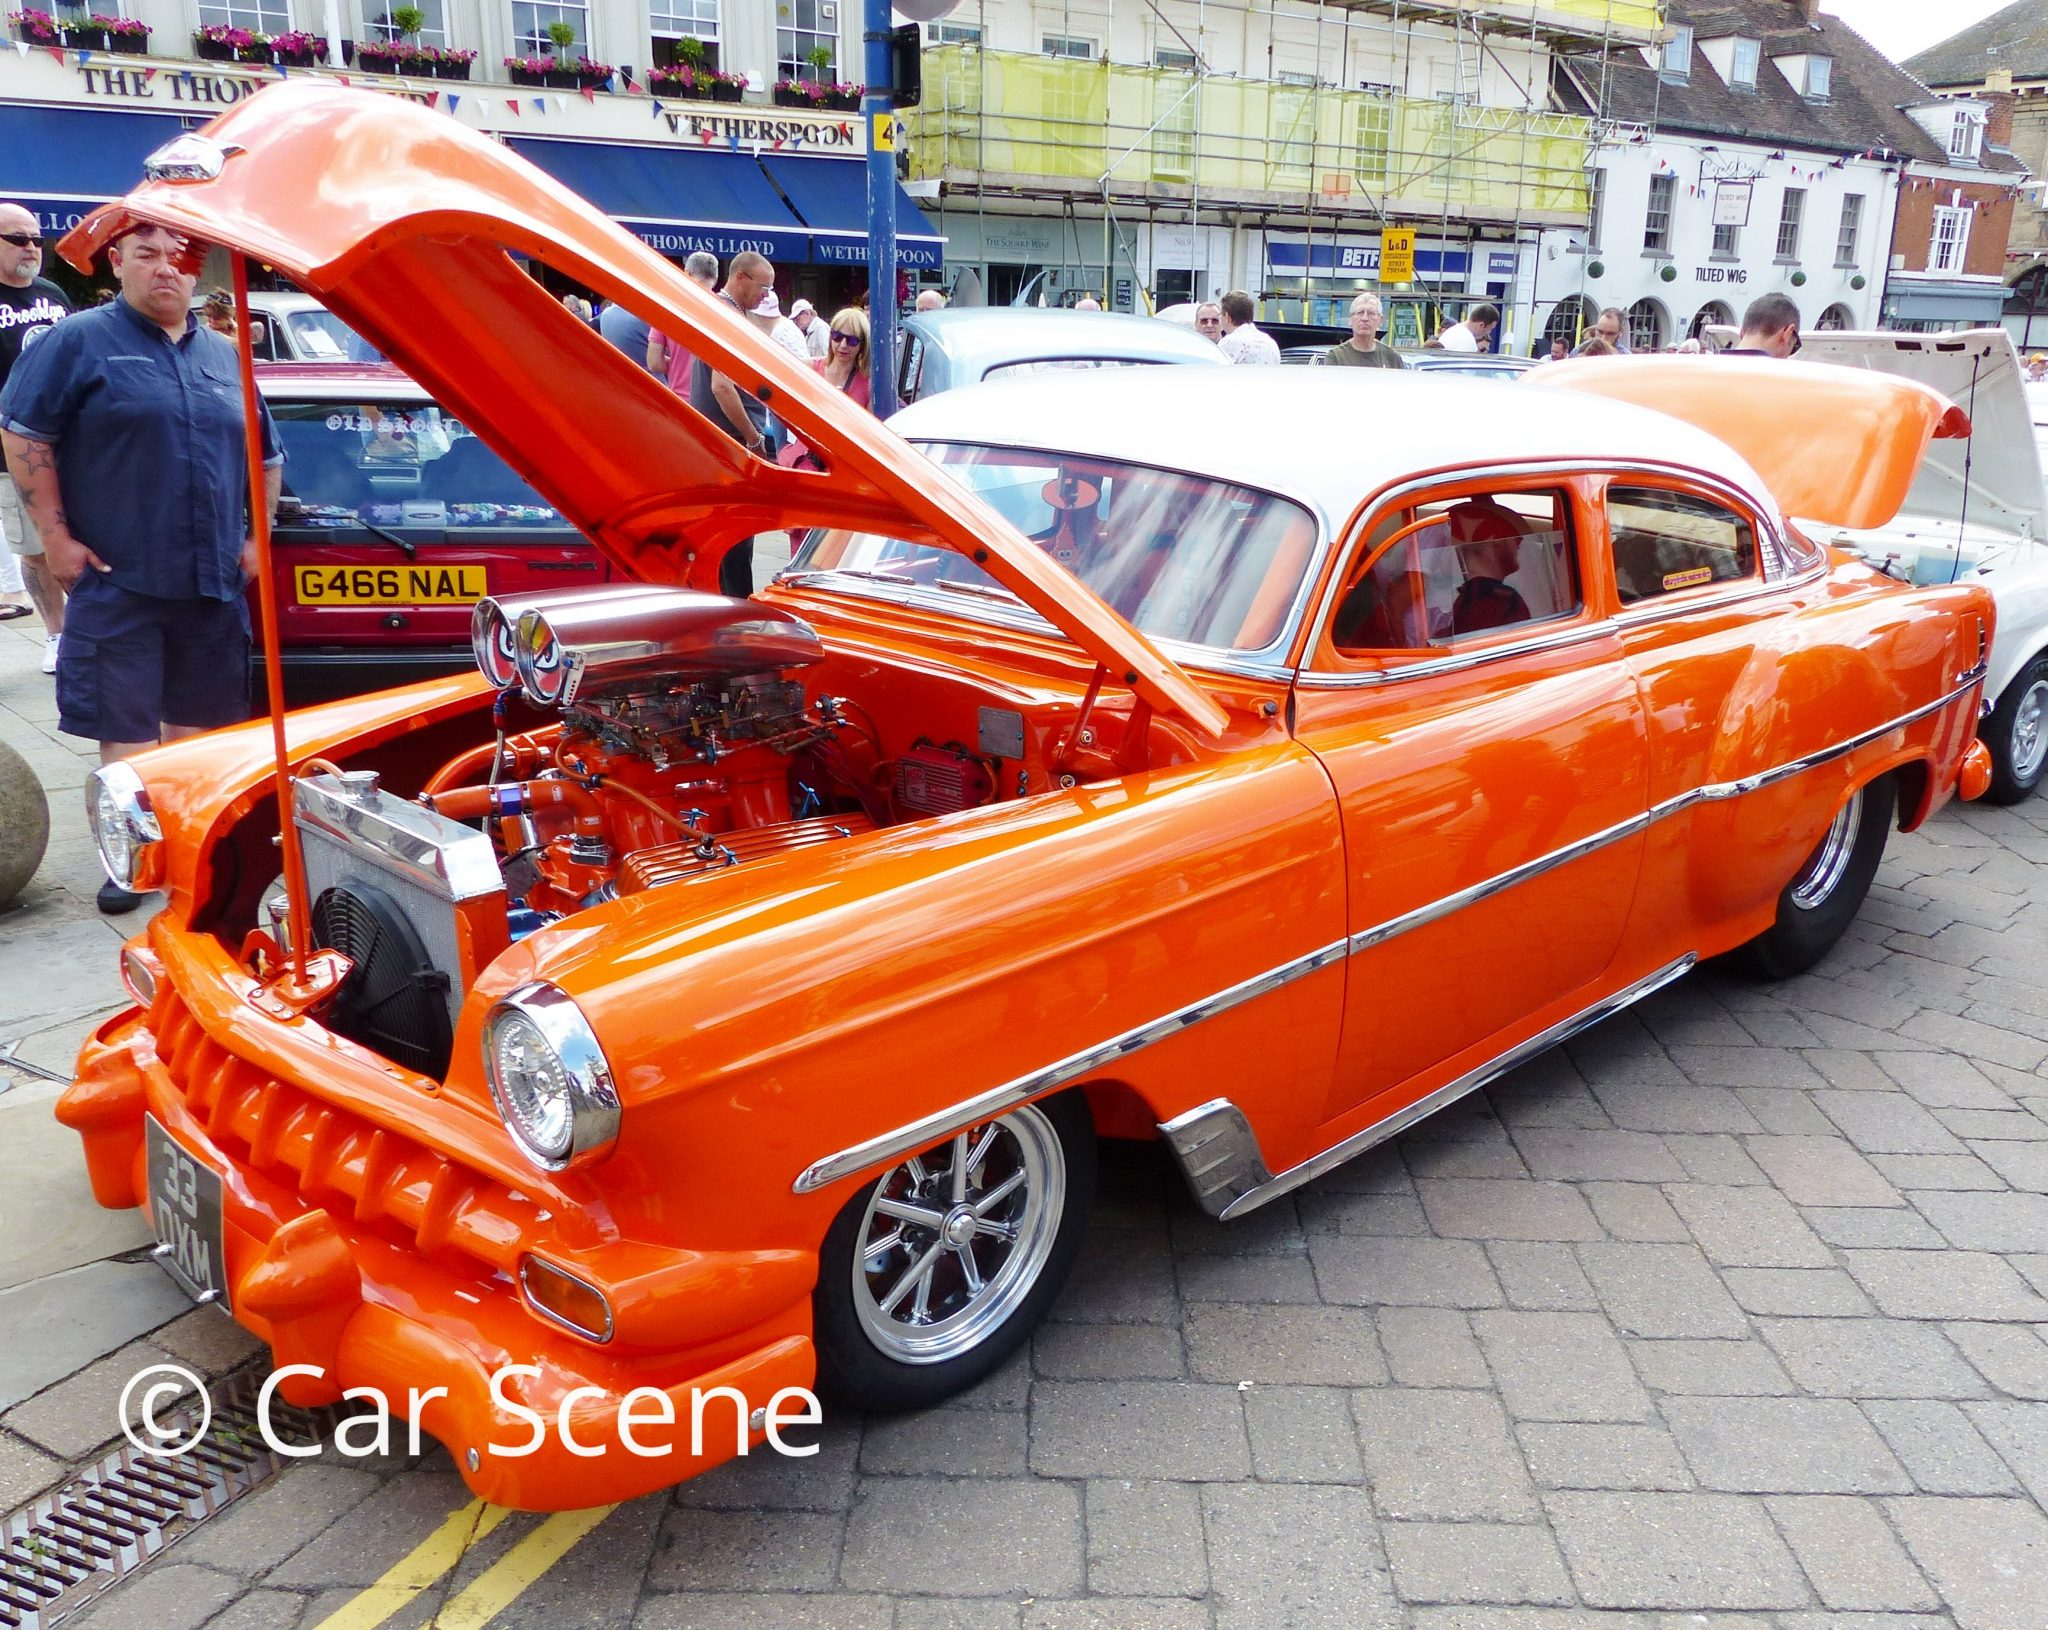 Heavily customised 1950s Chevrolet Coupe front side view